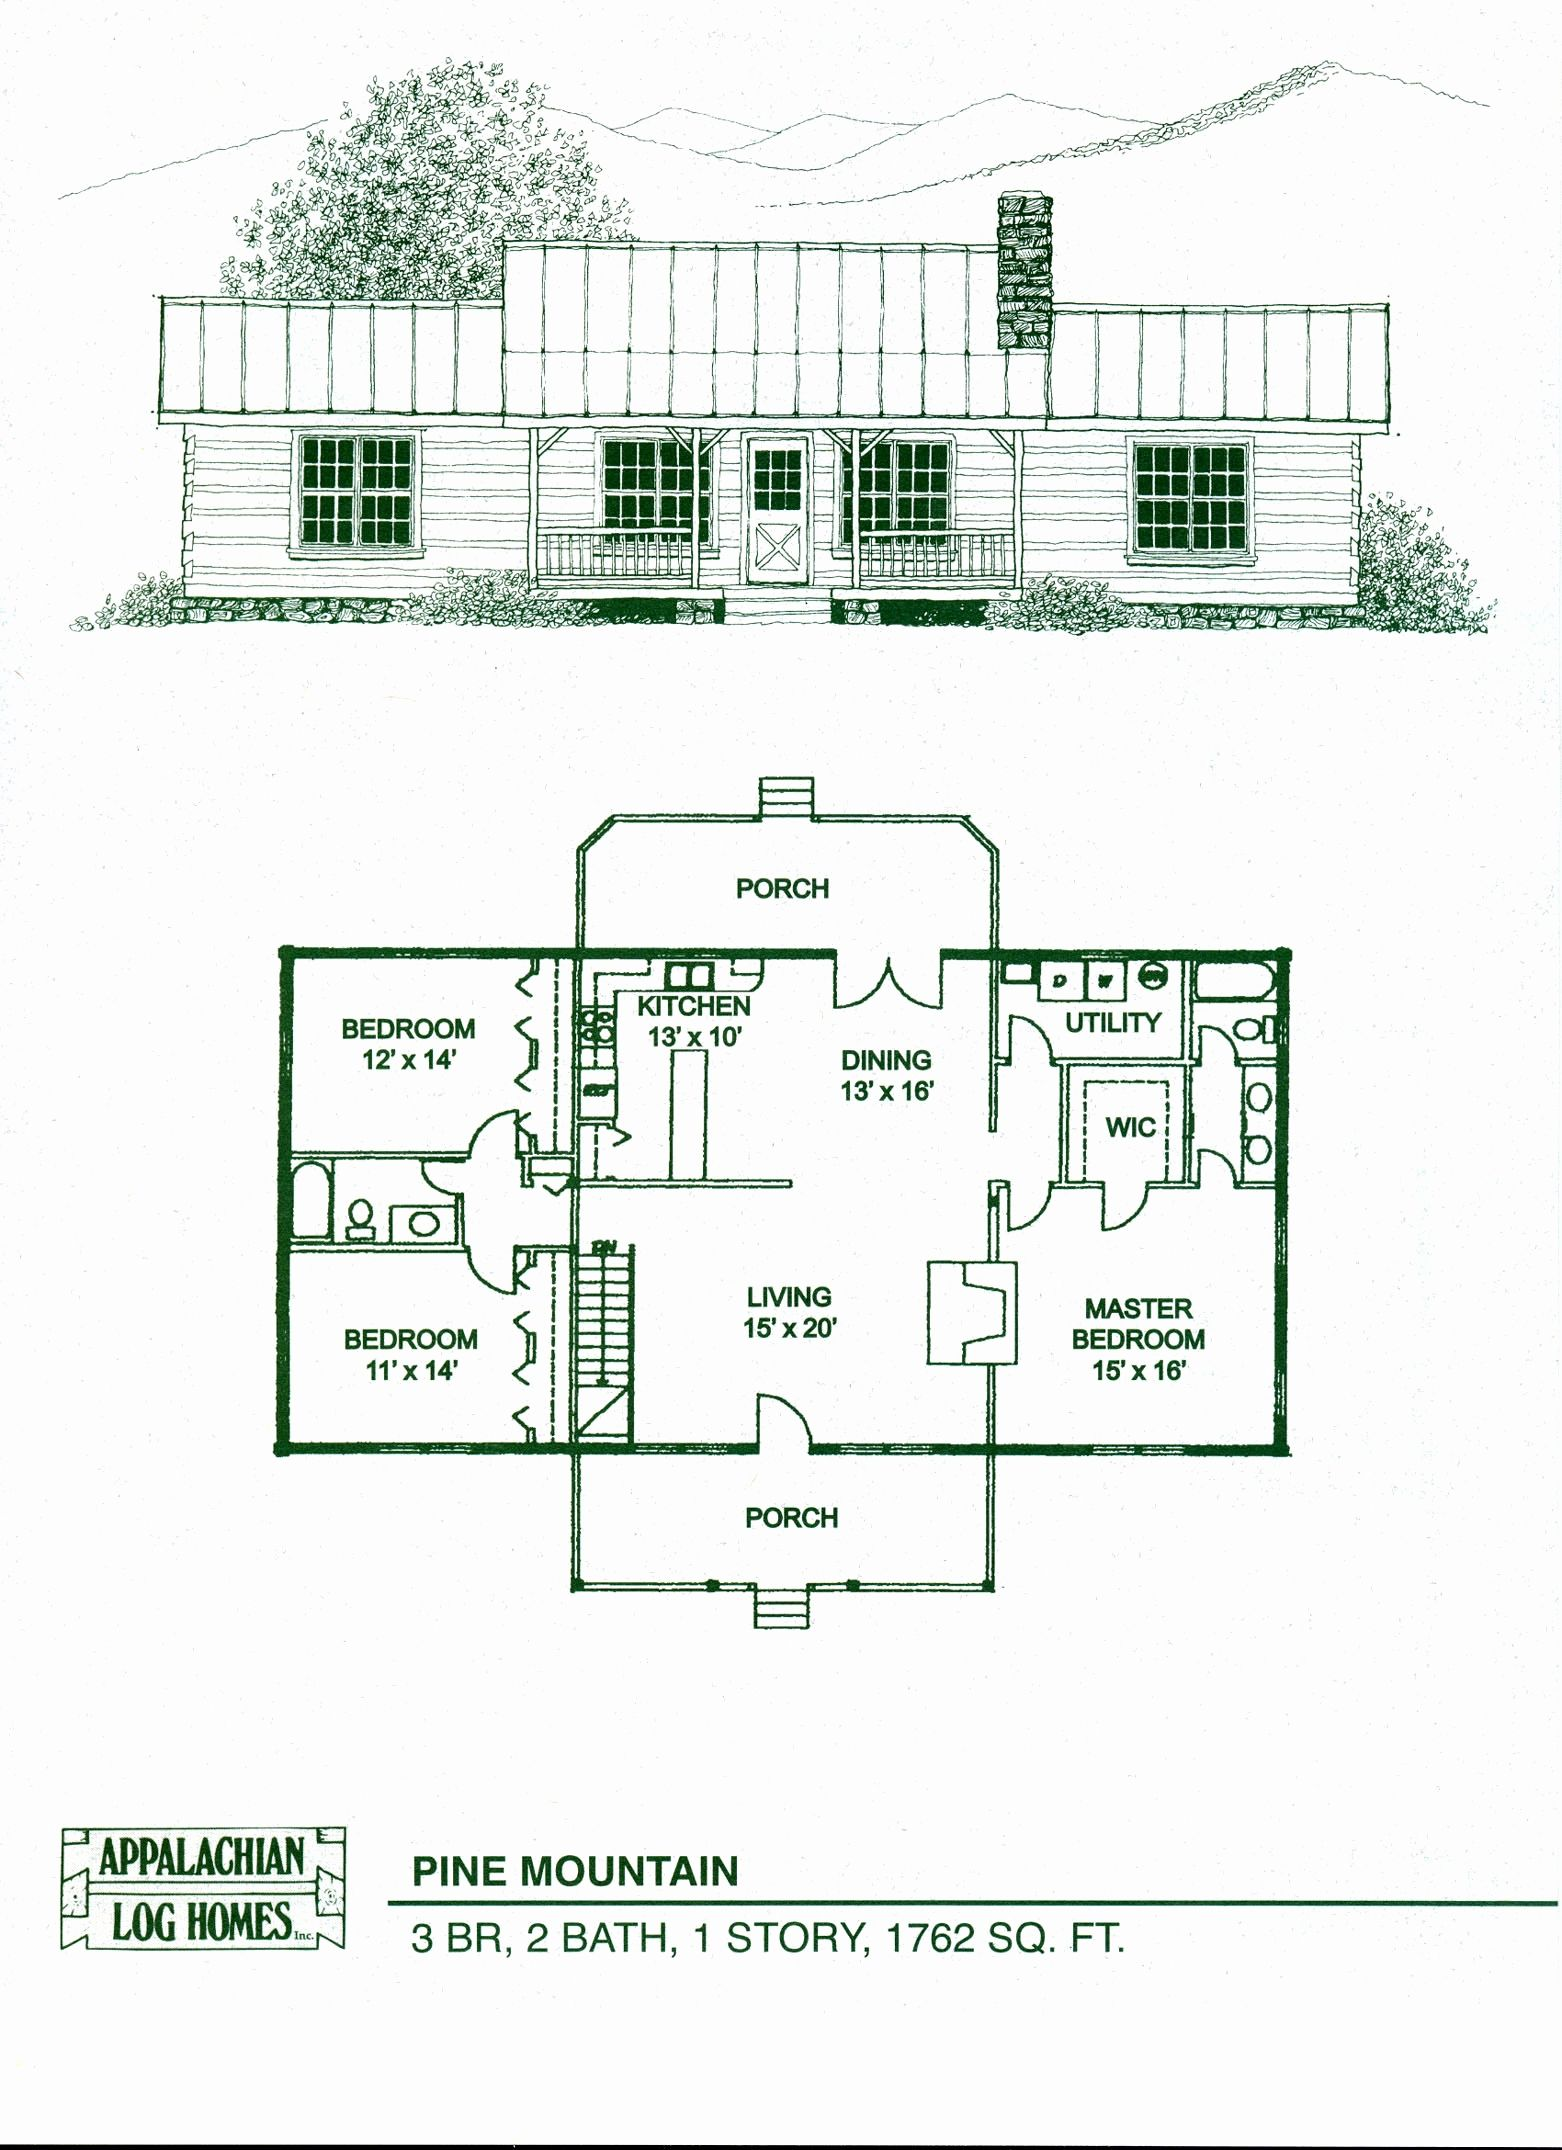 Apartments Floor Plans For Mountain Homes Modern Mountain Home From Floor Plans For Mountain Homes Image So Log Home Floor Plans Cabin Floor Plans House Plans